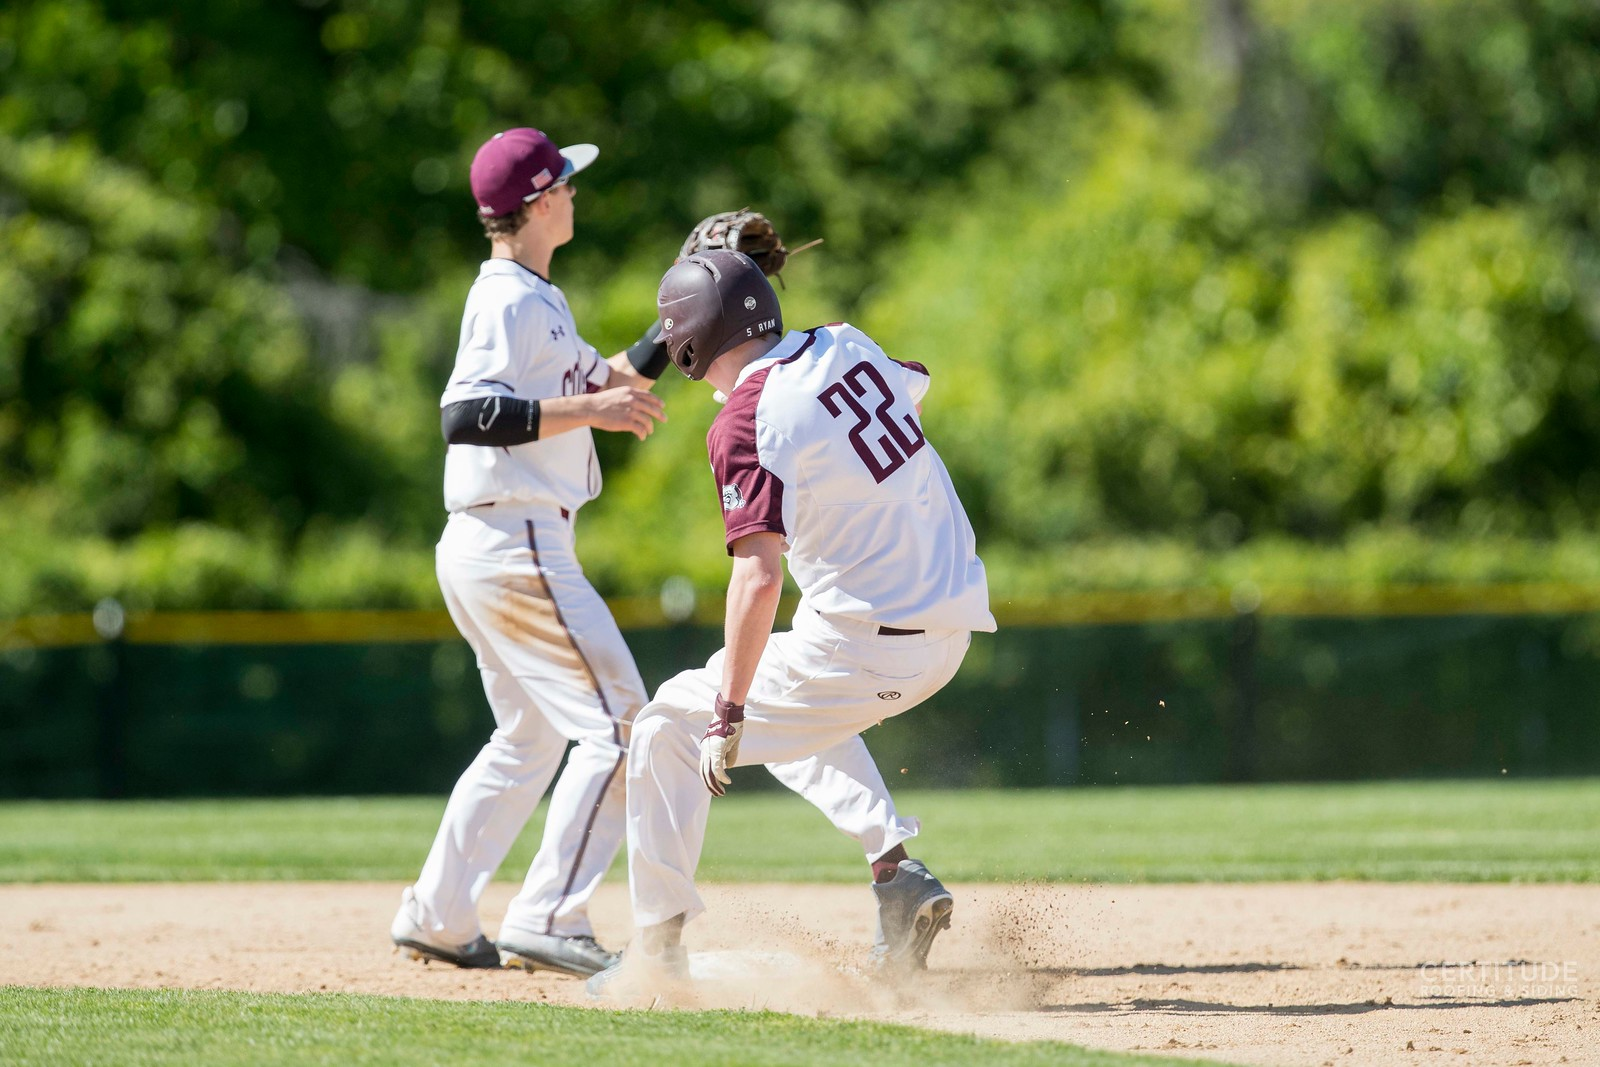 Lower_Merion_BASEBALL_vs_Conestoga-147